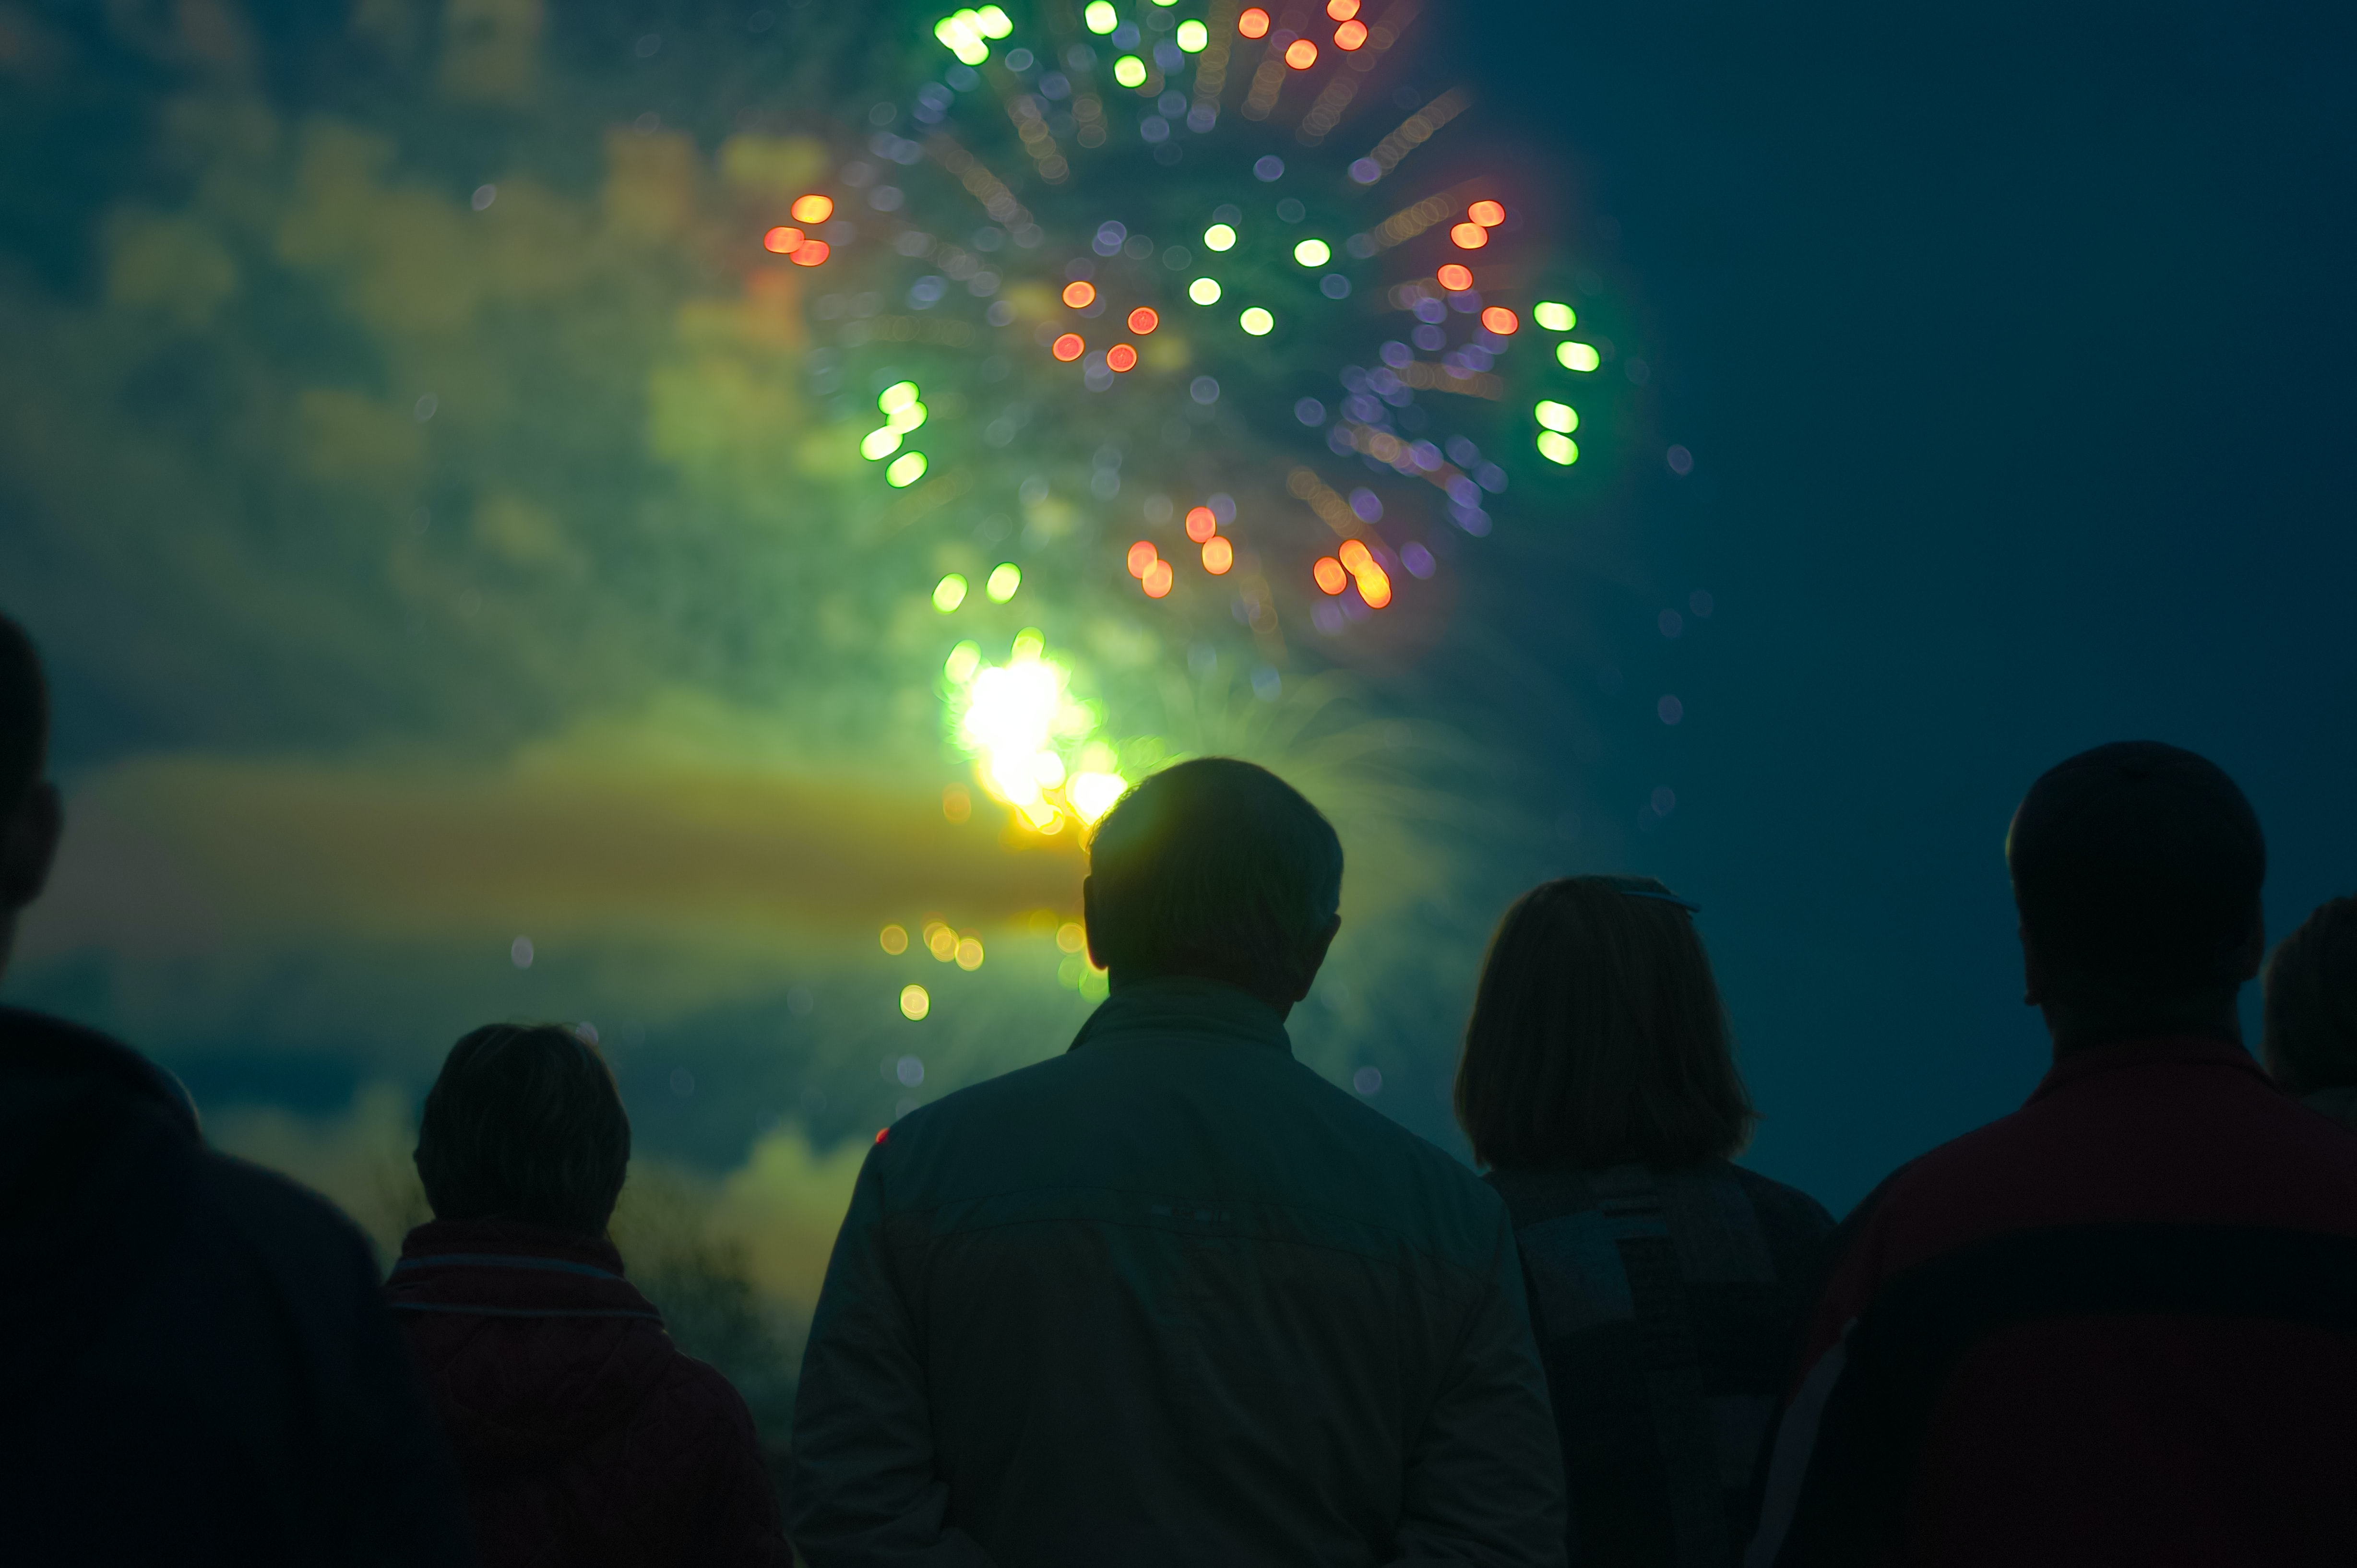 Group of people watching a green and red firework explode